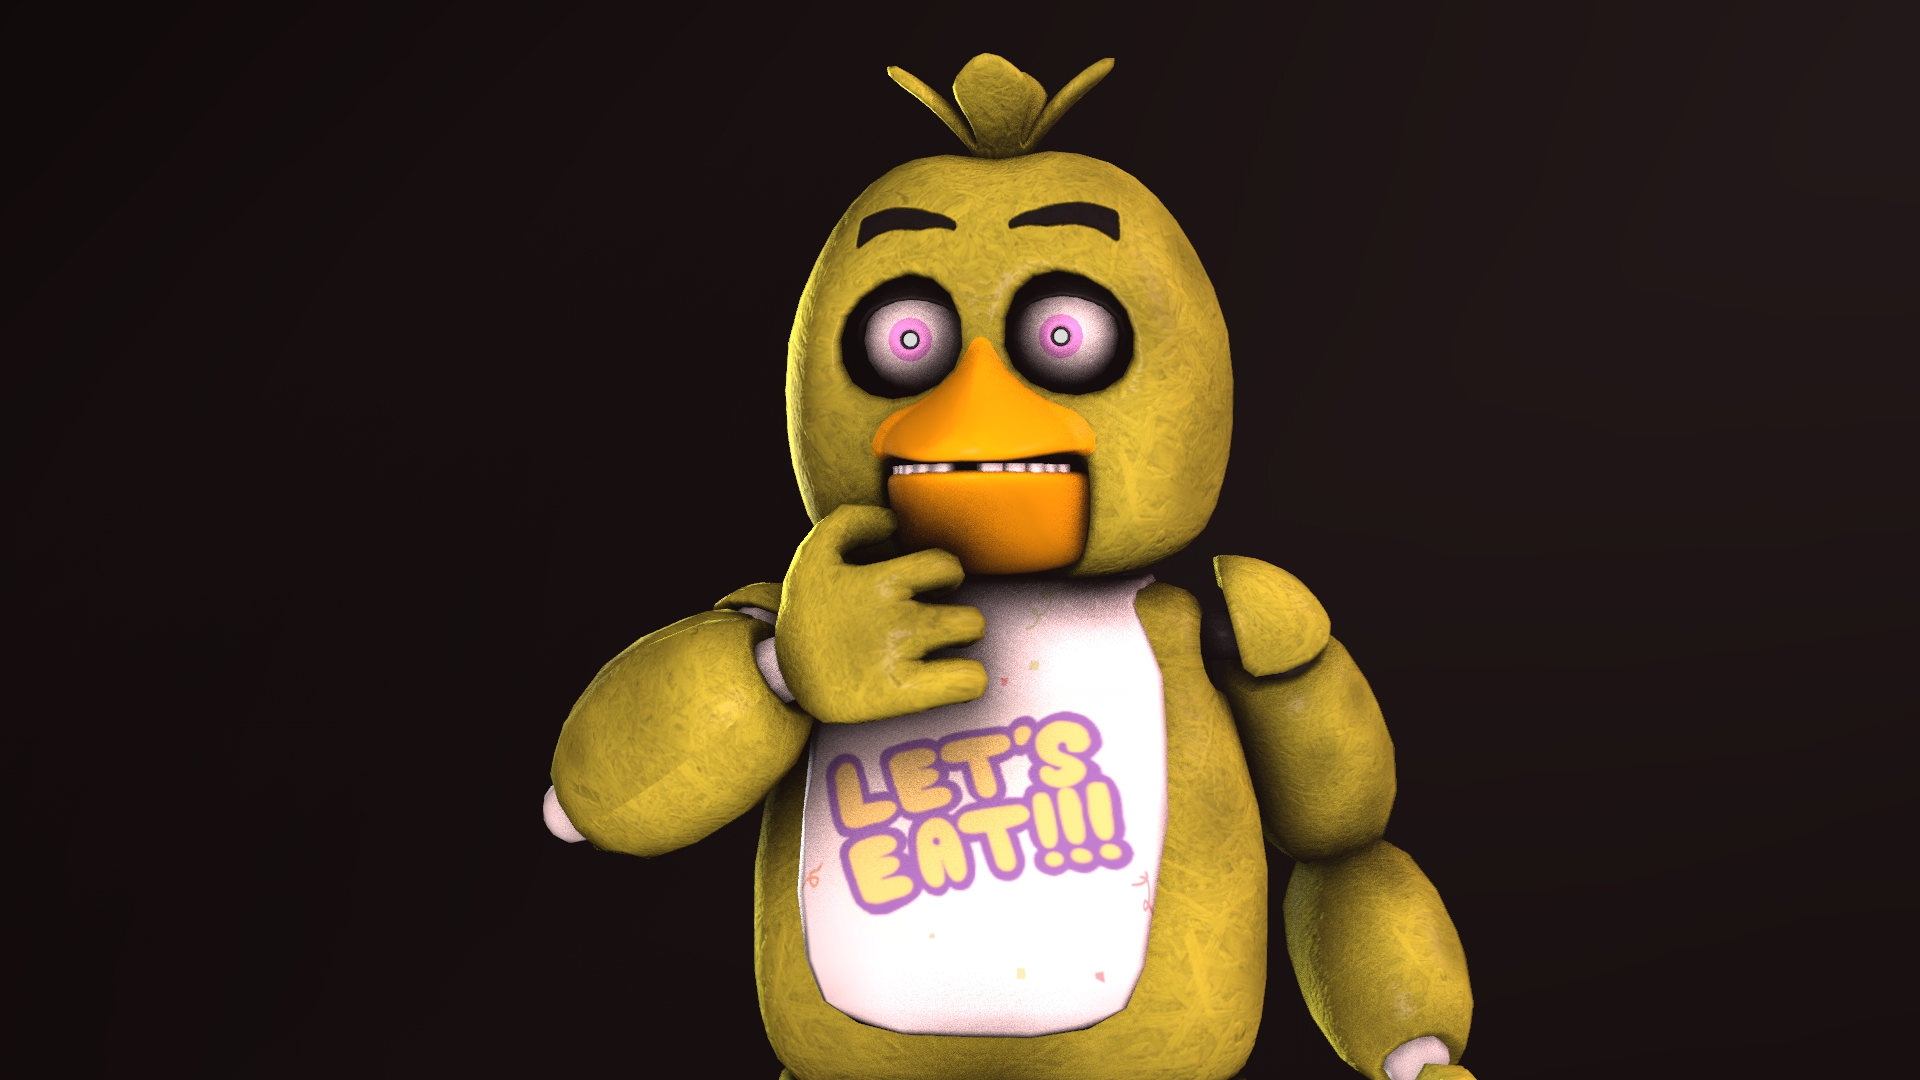 Chica images 2